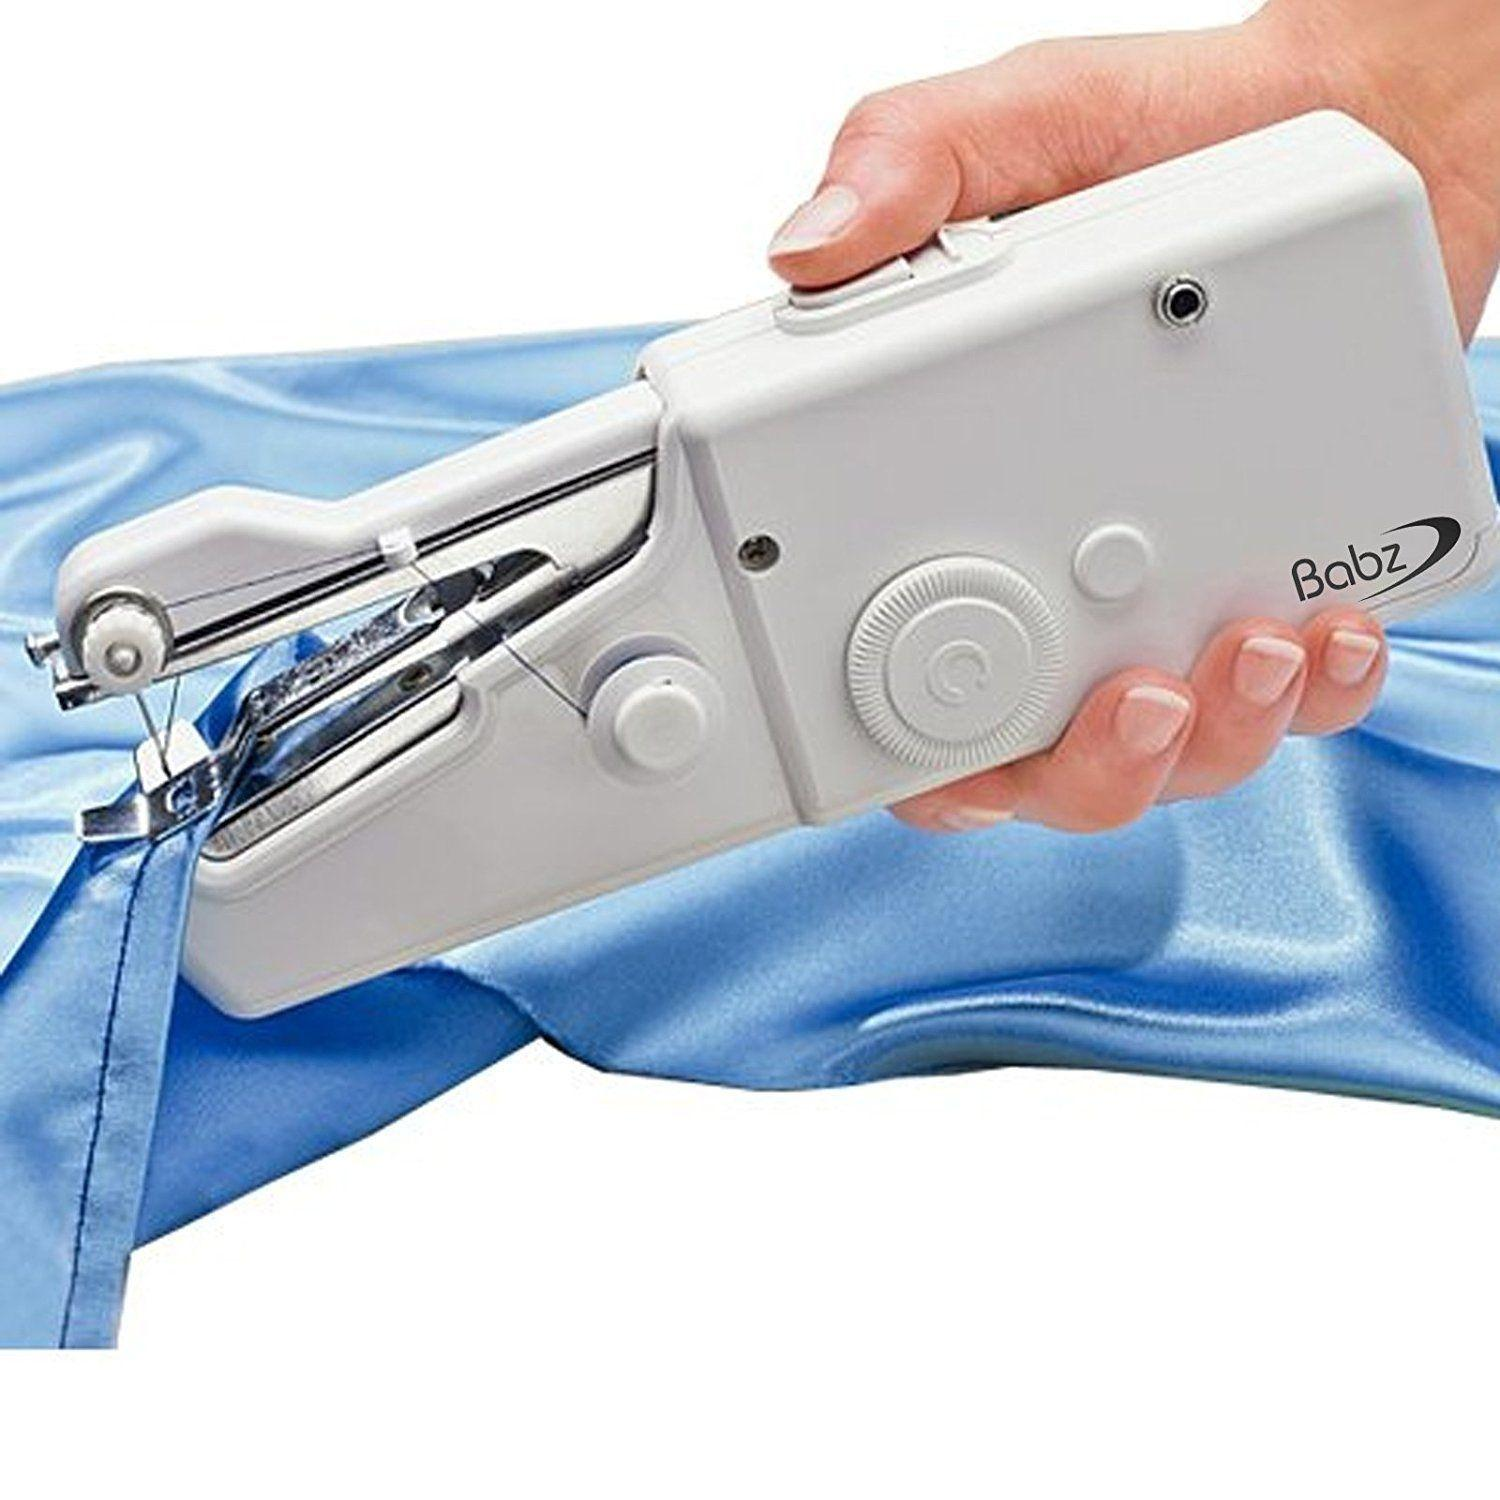 Portable Cordless Handheld Sewing Machine